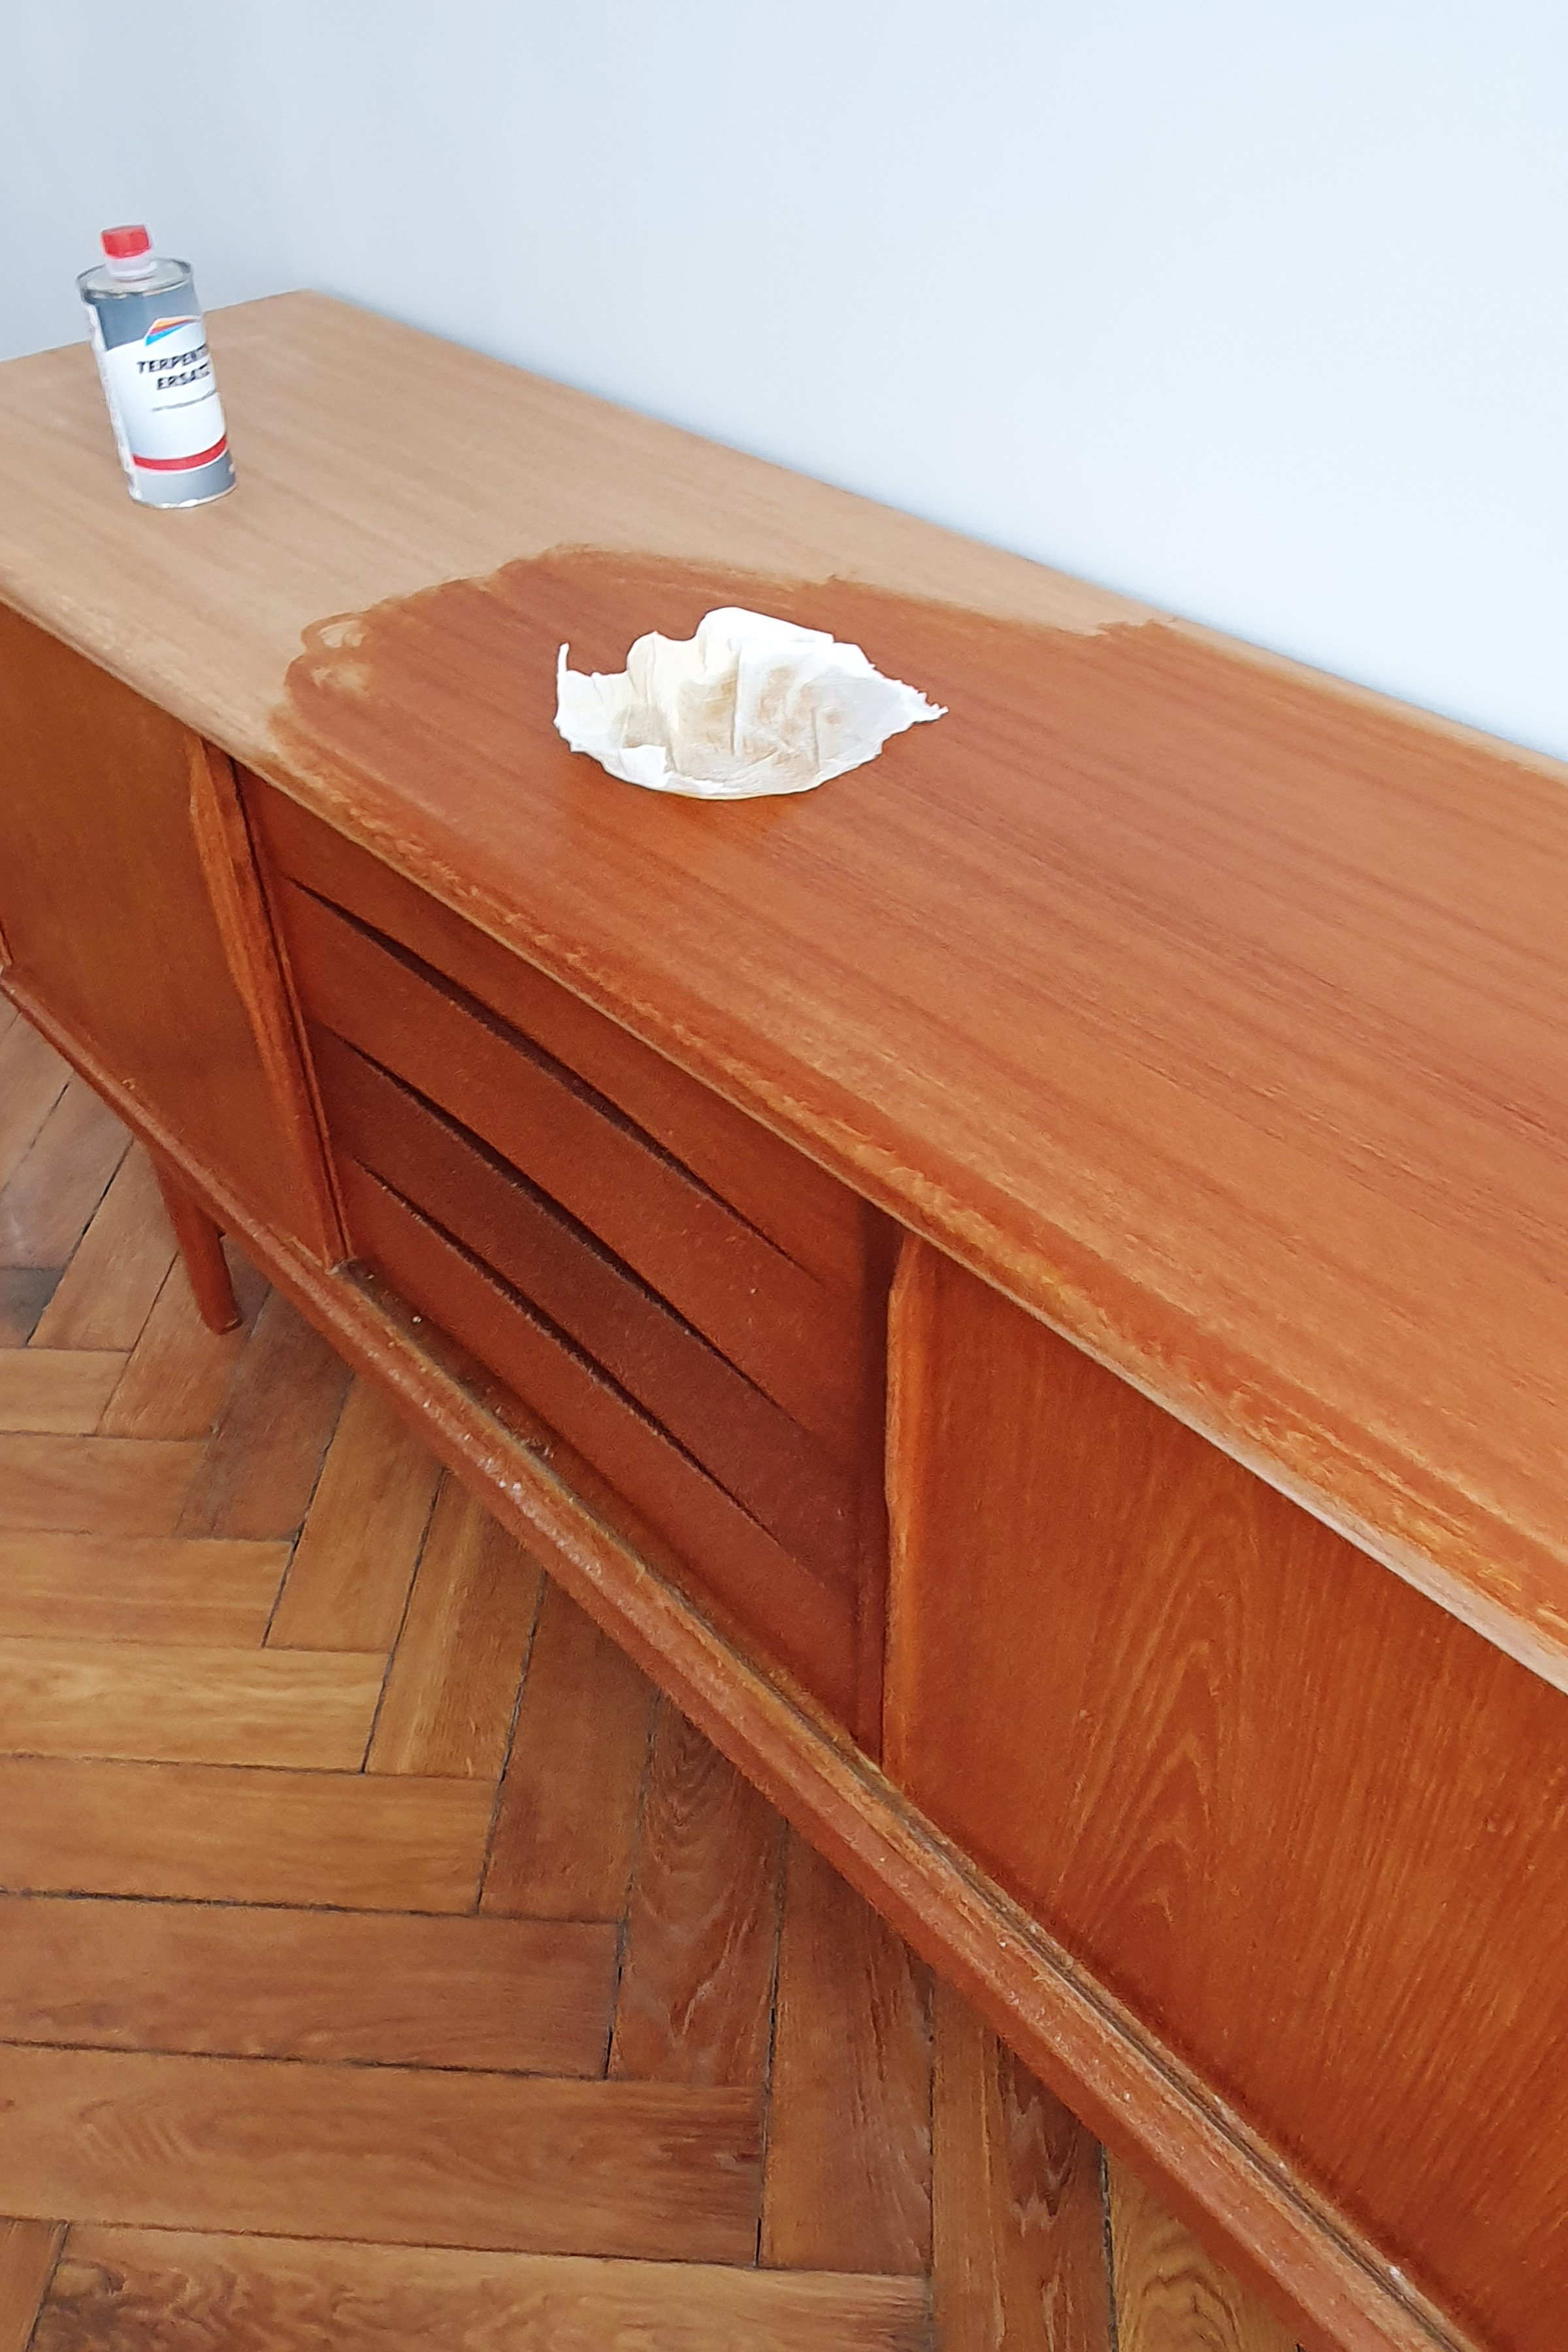 How To Remove Watermarks From Wooden Furniture | Little House On The Corner